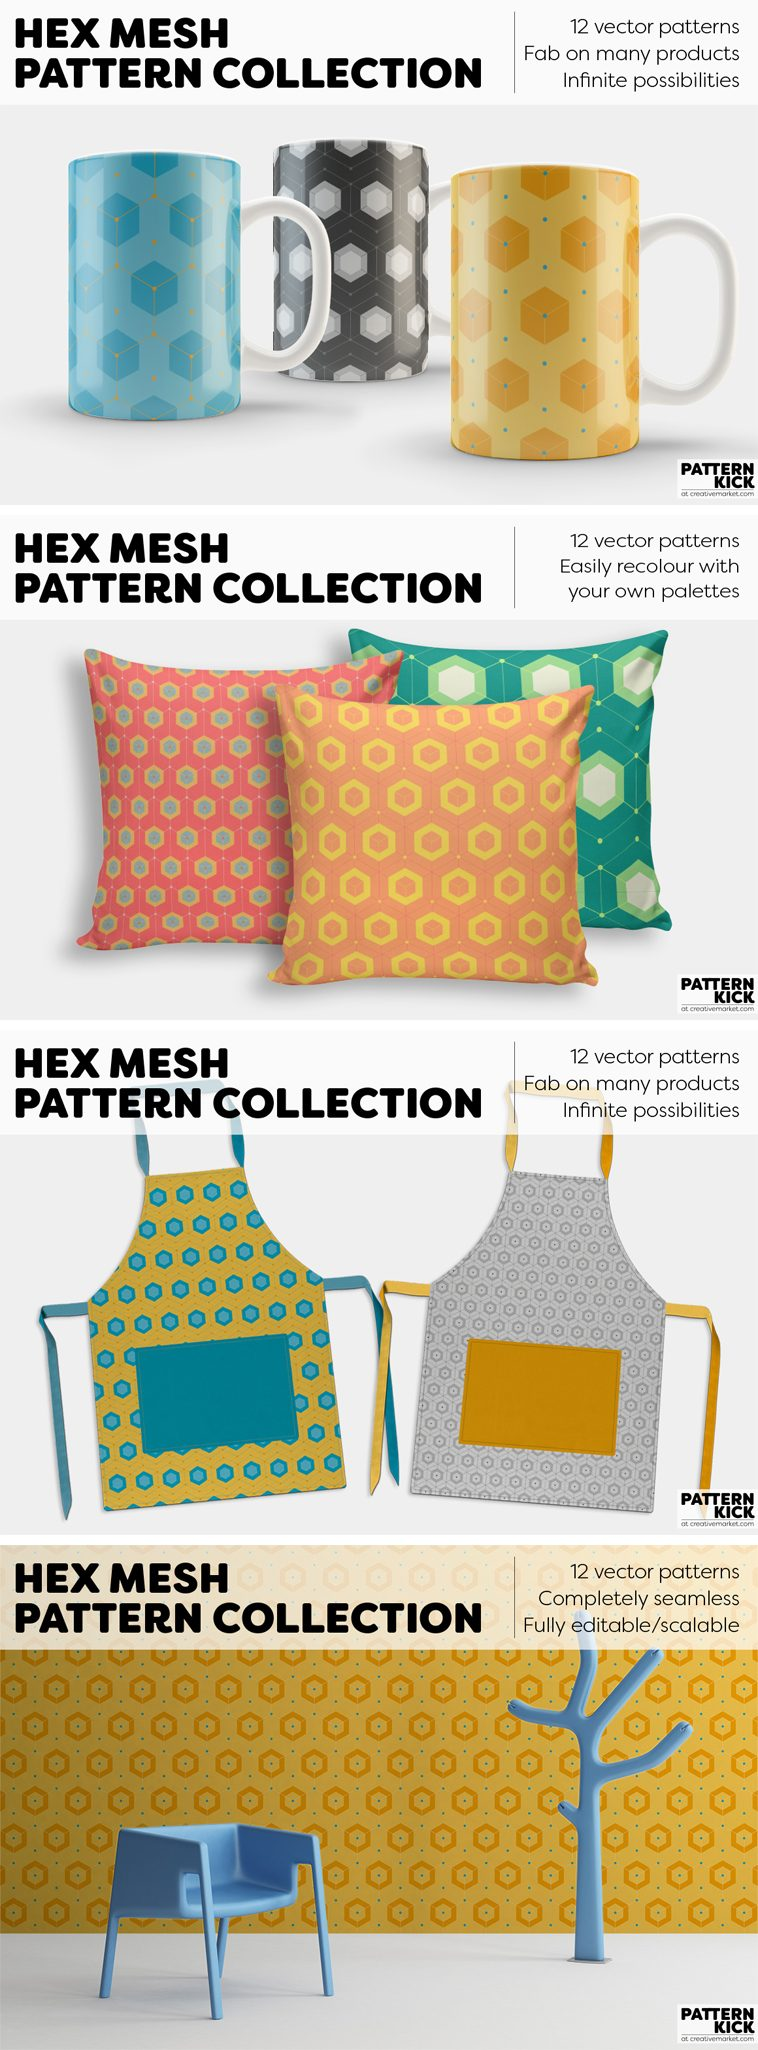 Geometric Prints and Patterns at Pattern Kick - Creative Market [2] | Pitter Pattern